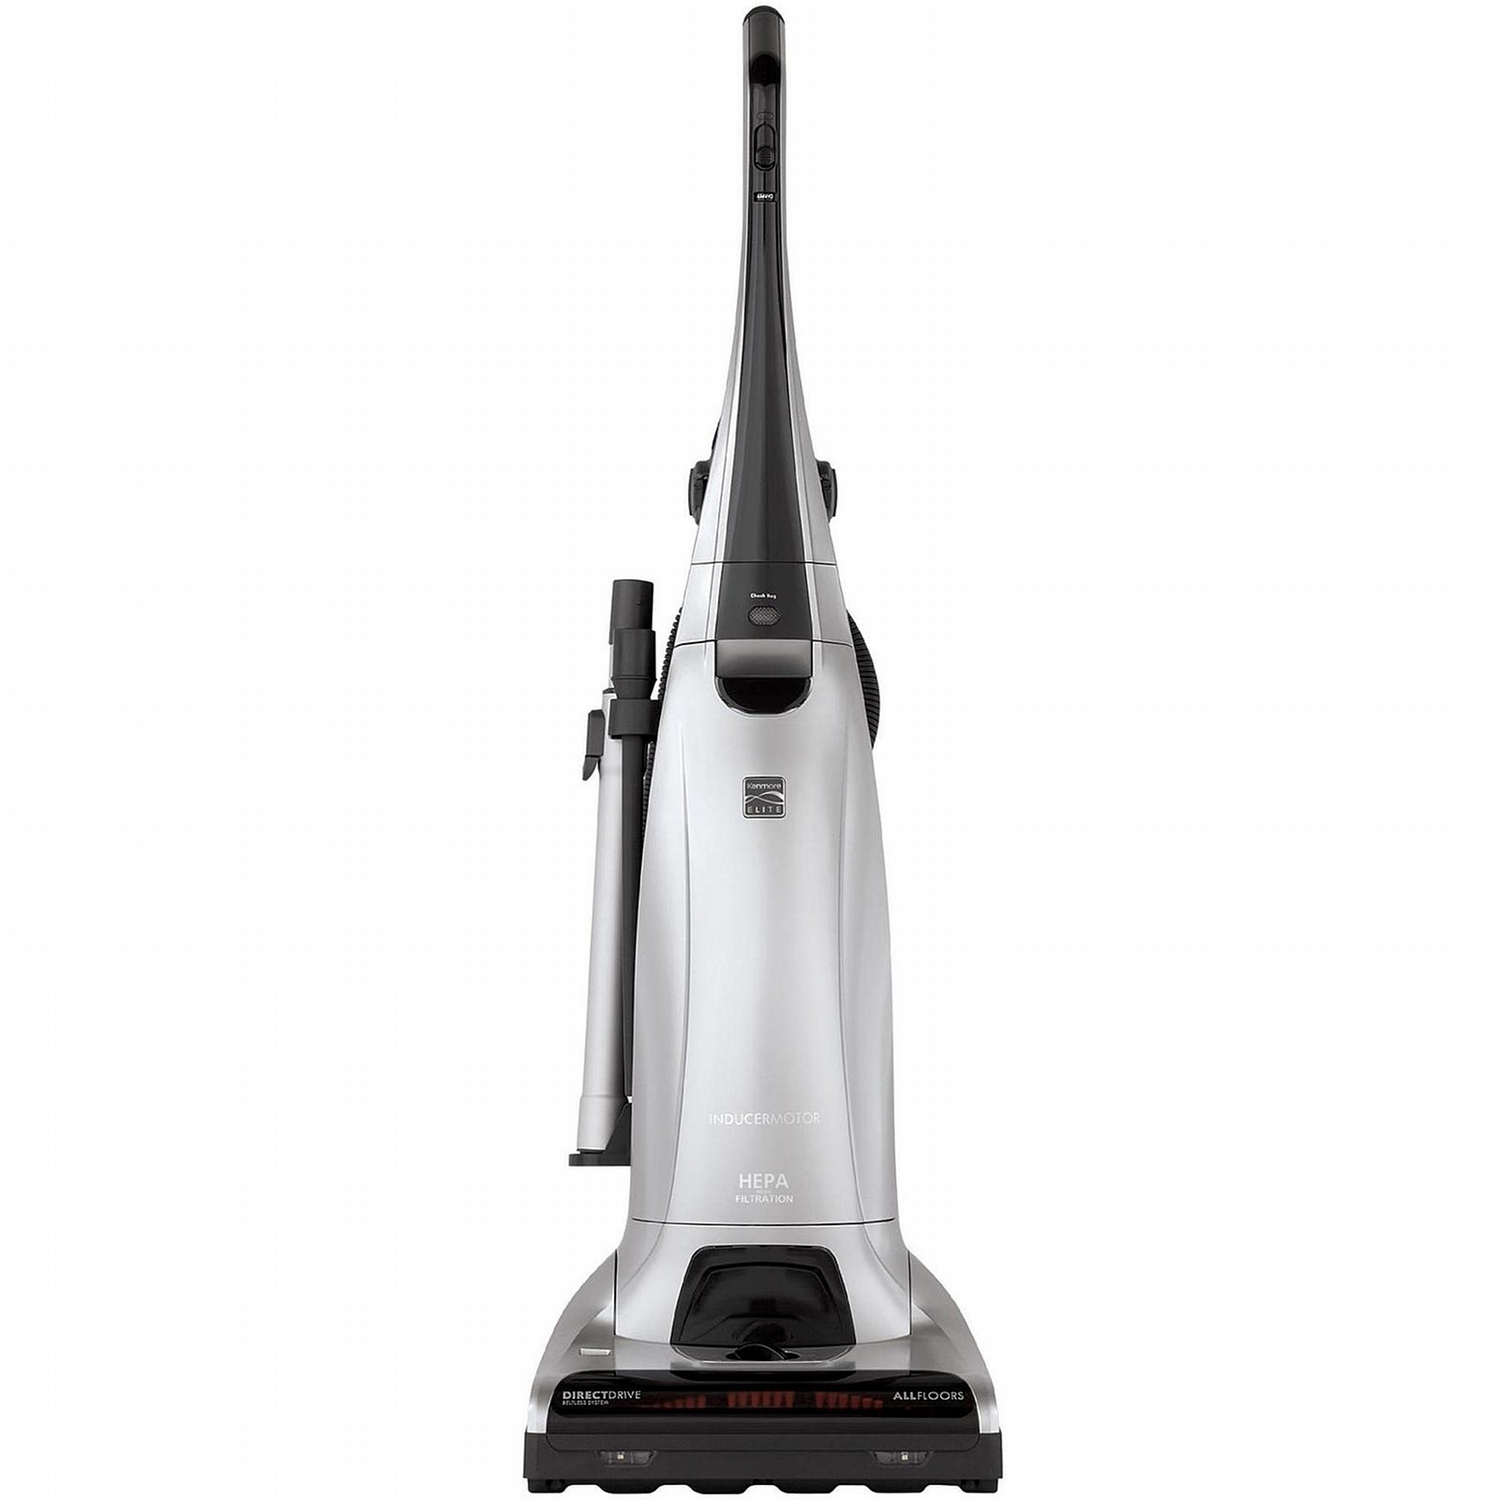 This is an image of a Kenmore Elite 31150 vacuum cleaner